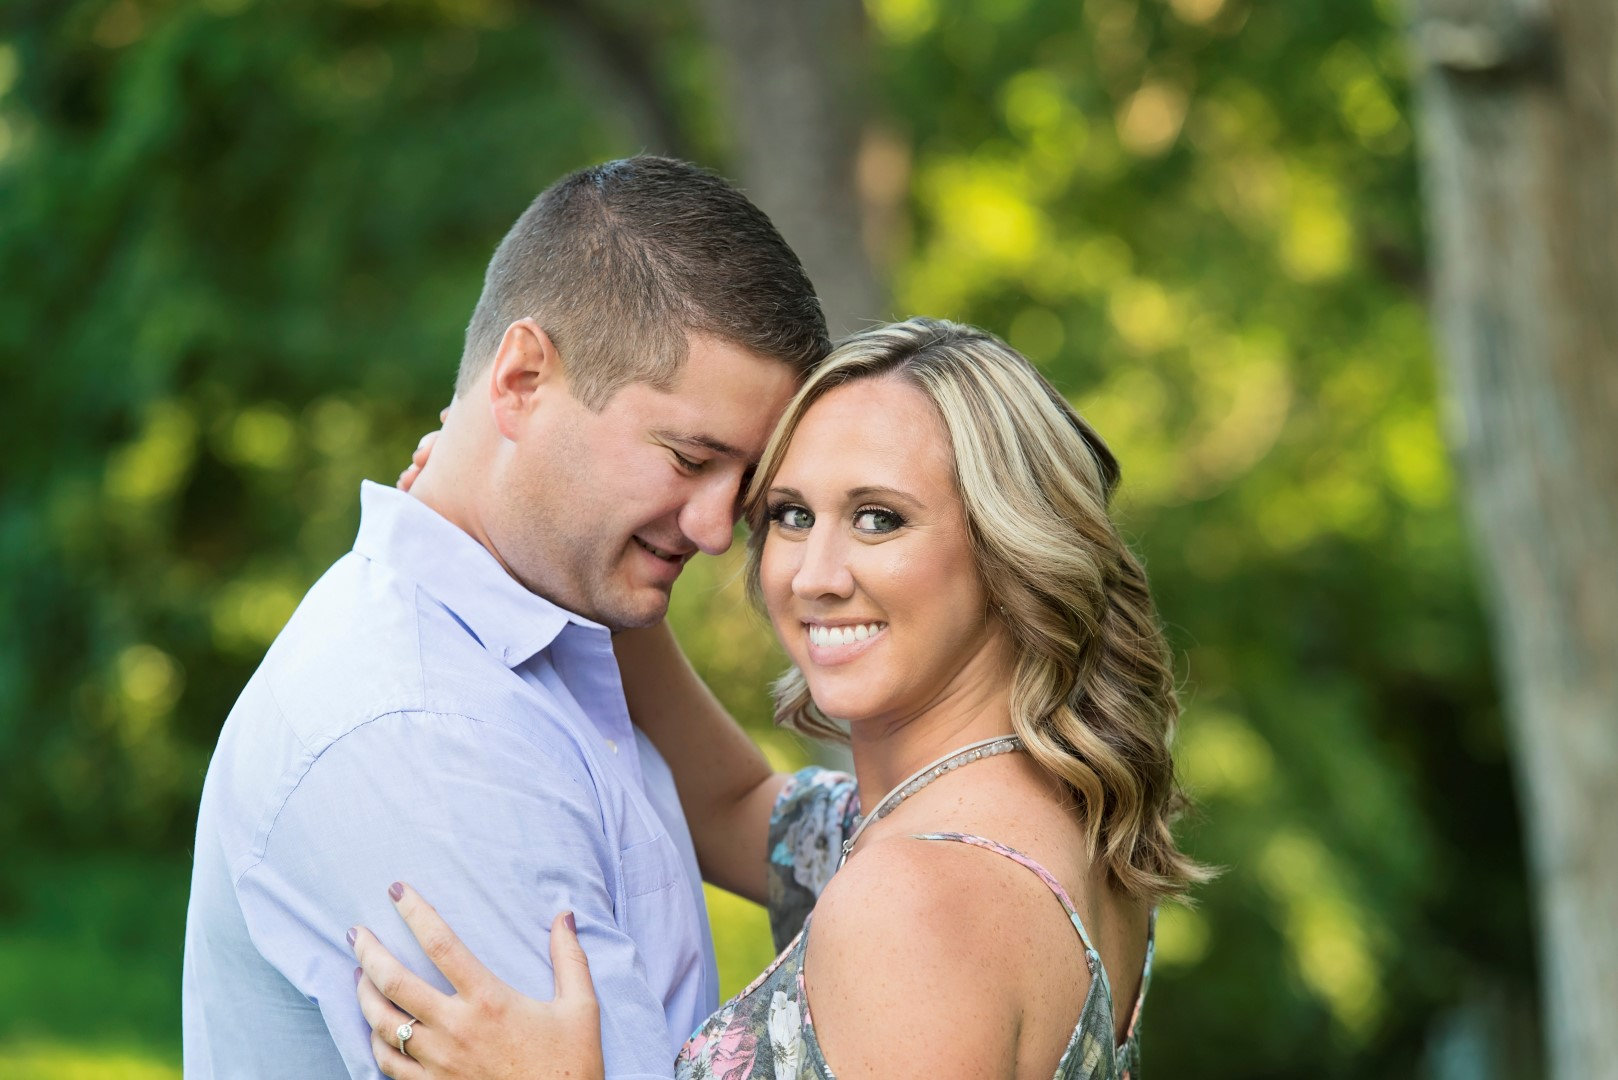 LeighAnn_Beau_Engagement_Collection_01 (Large).jpg